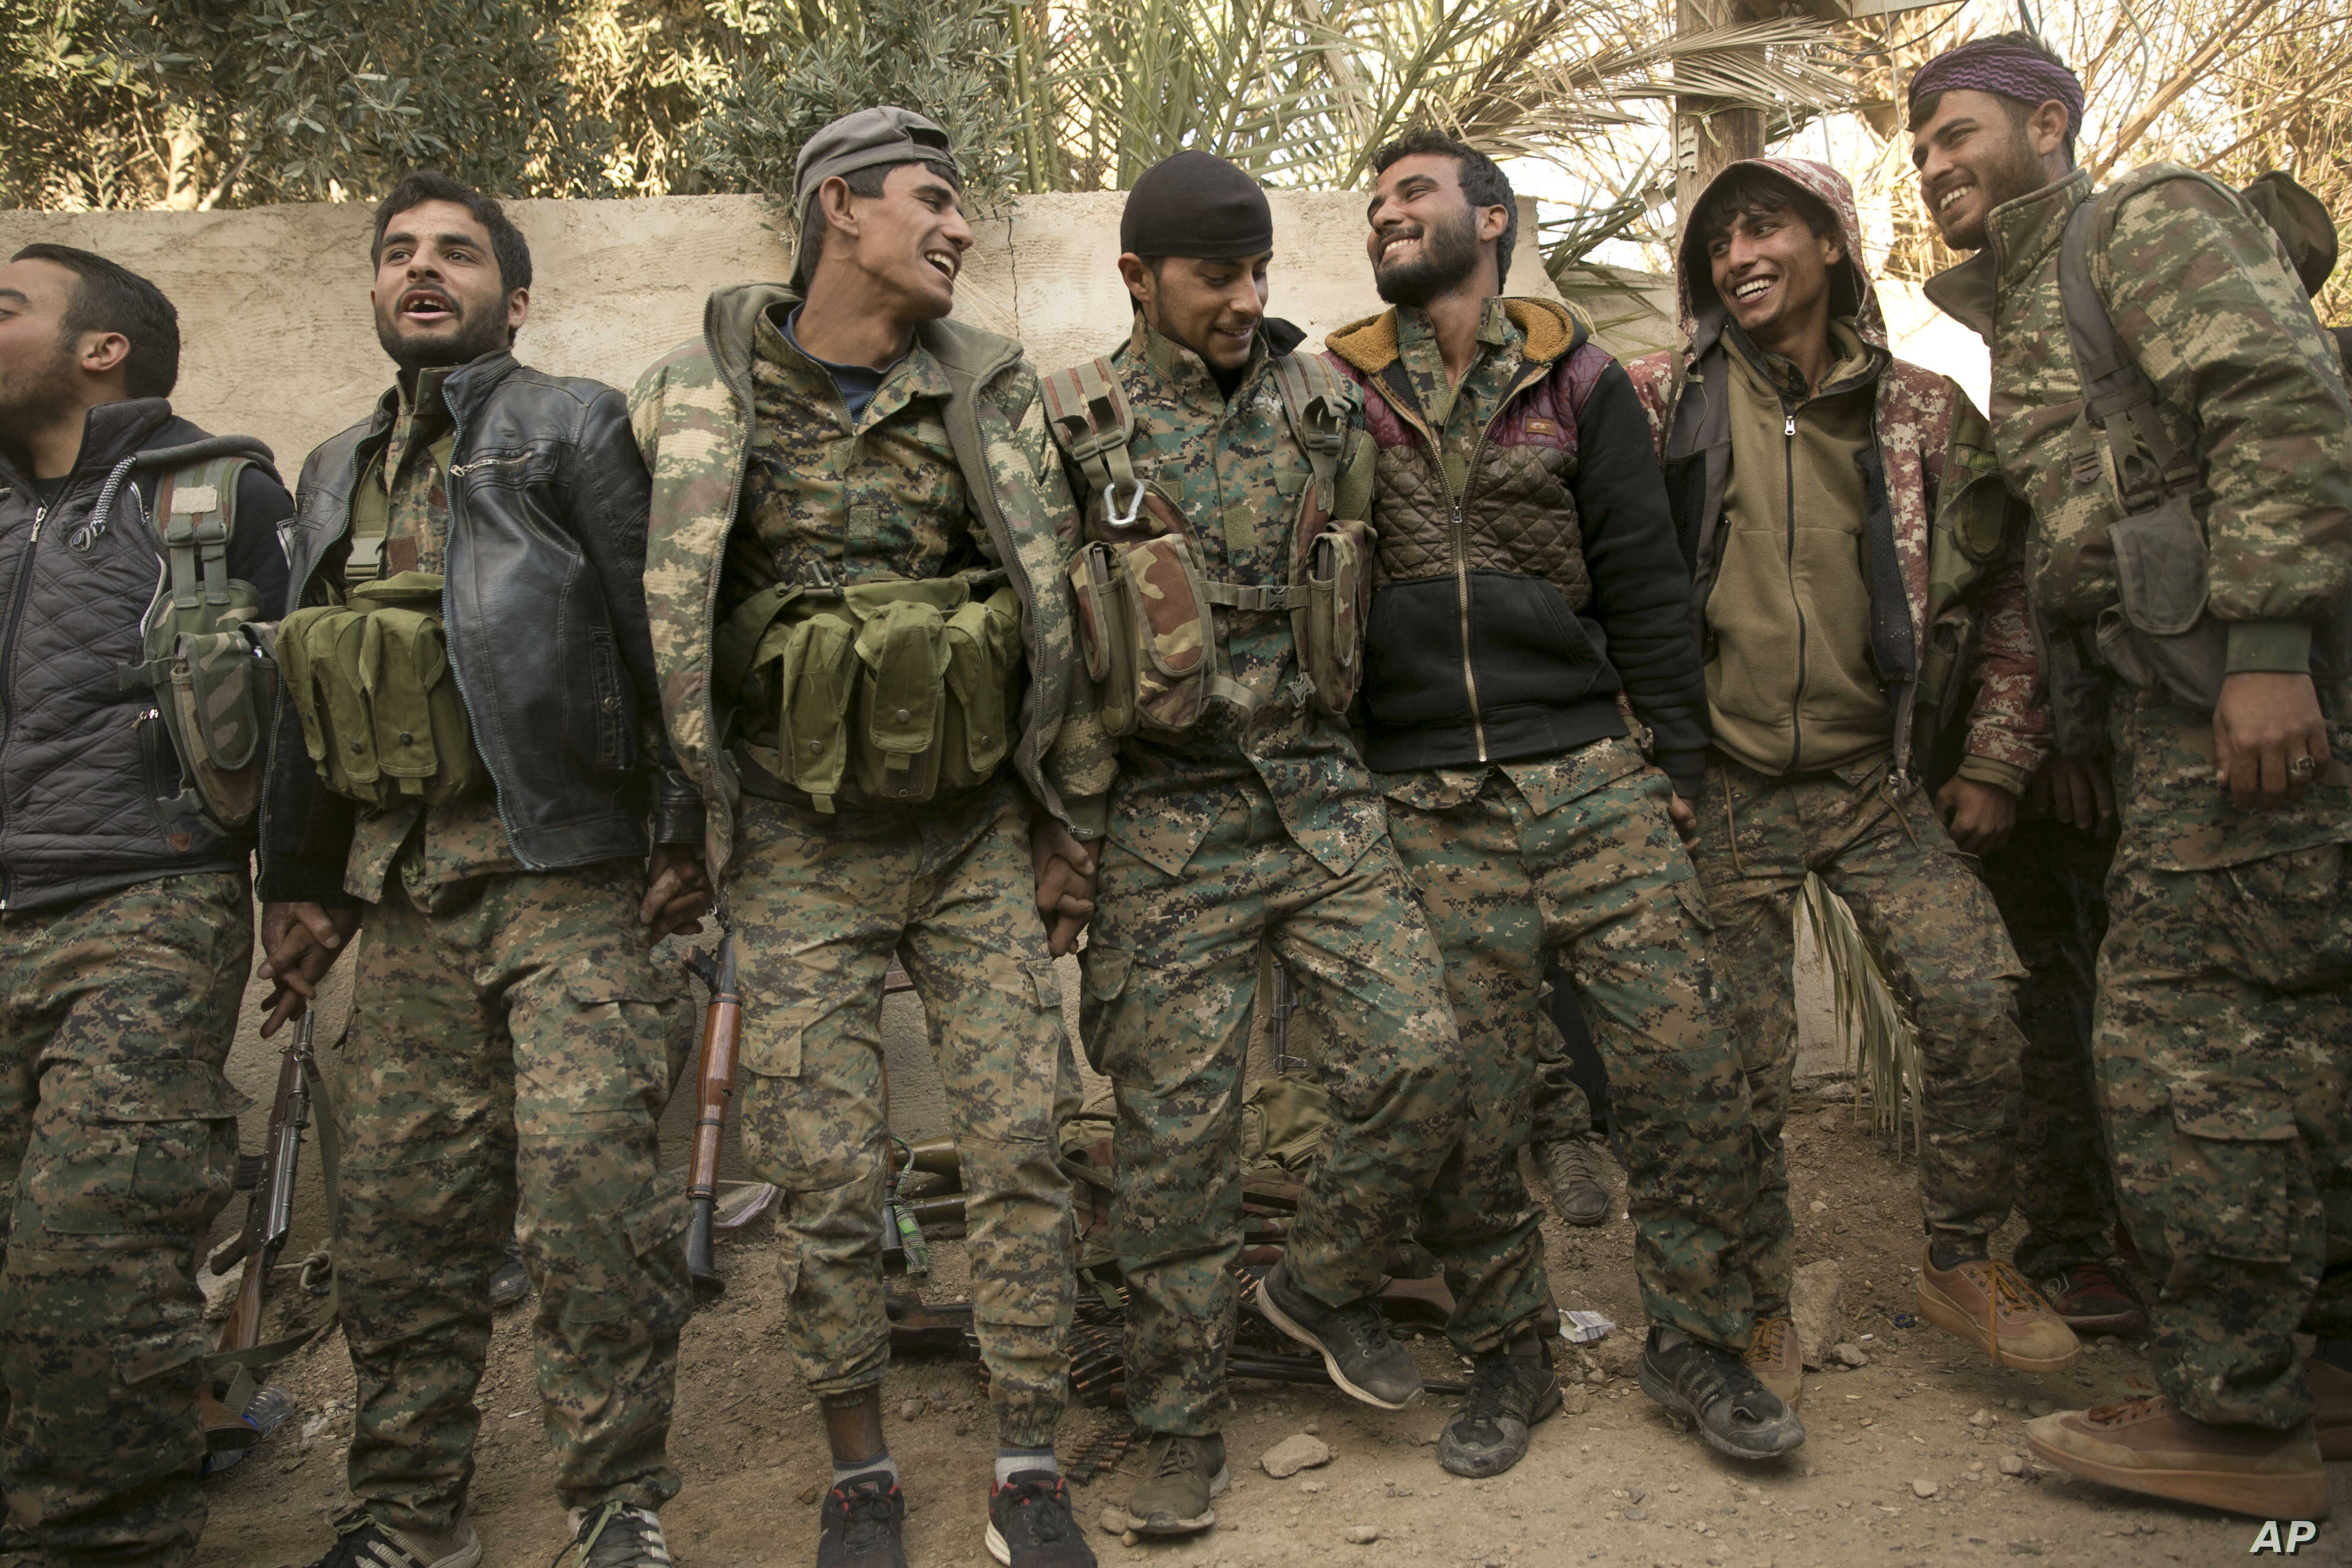 U.S.-backed Syrian Democratic Forces fighters celebrate their territorial gains over Islamic State militants in Baghuz, Syria, March 19, 2019.